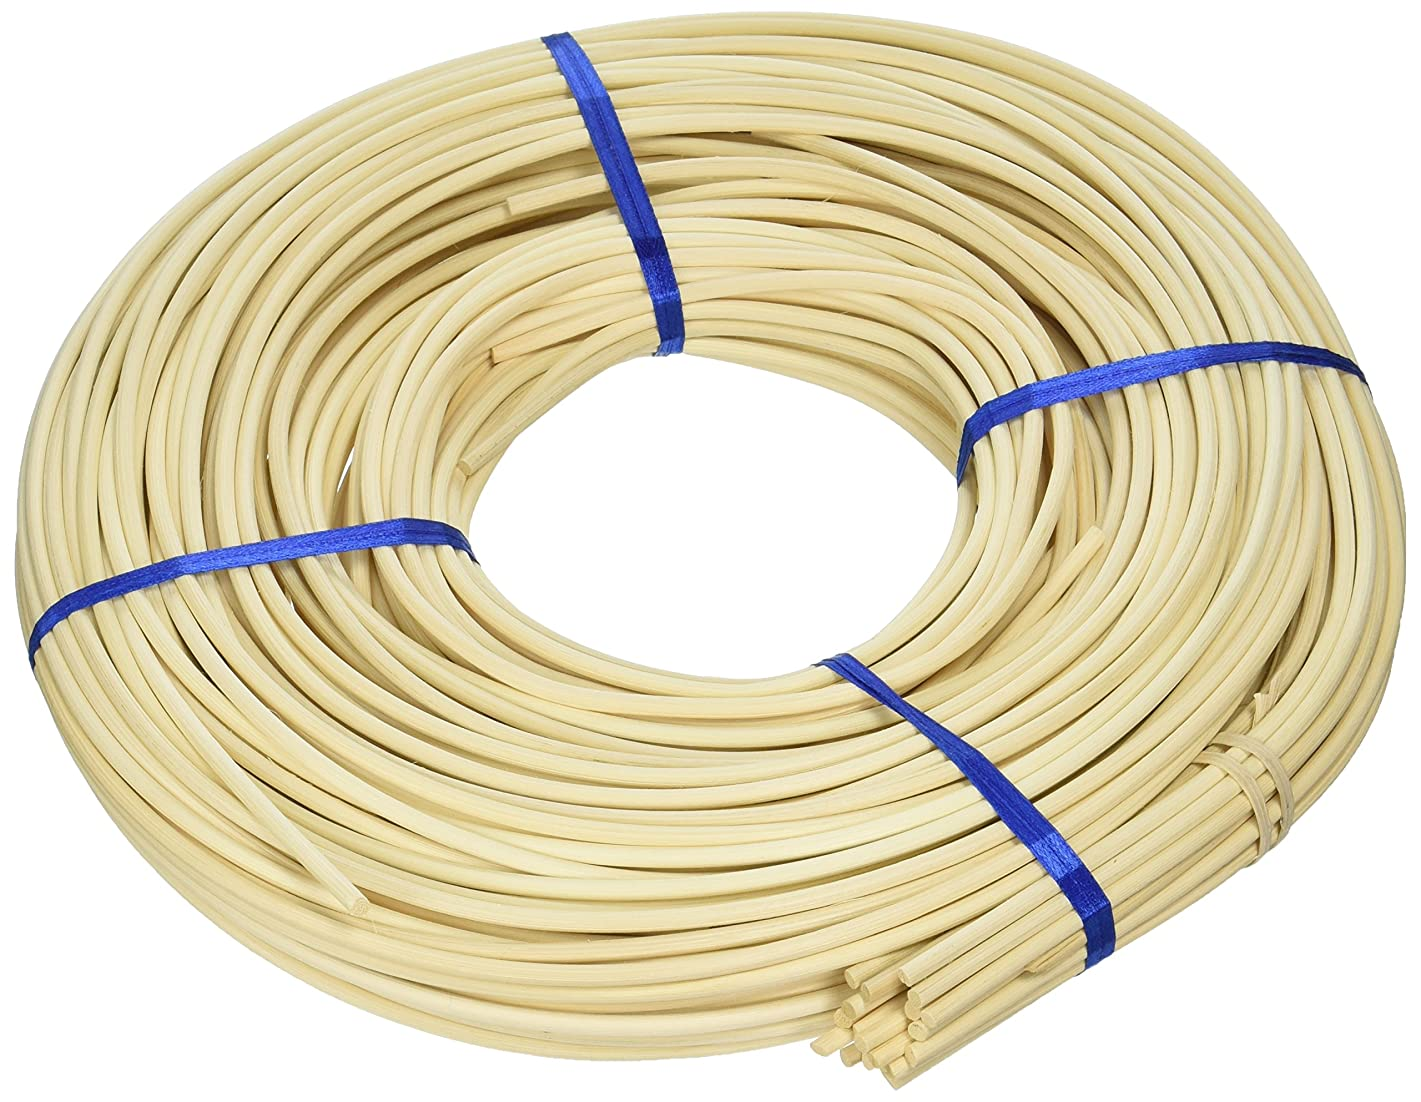 Commonwealth Basket Round Reed #6 4-1/4, 4-1/2mm 1-Pound Coil, Approximately, 160-Feet kdgrzx721484710